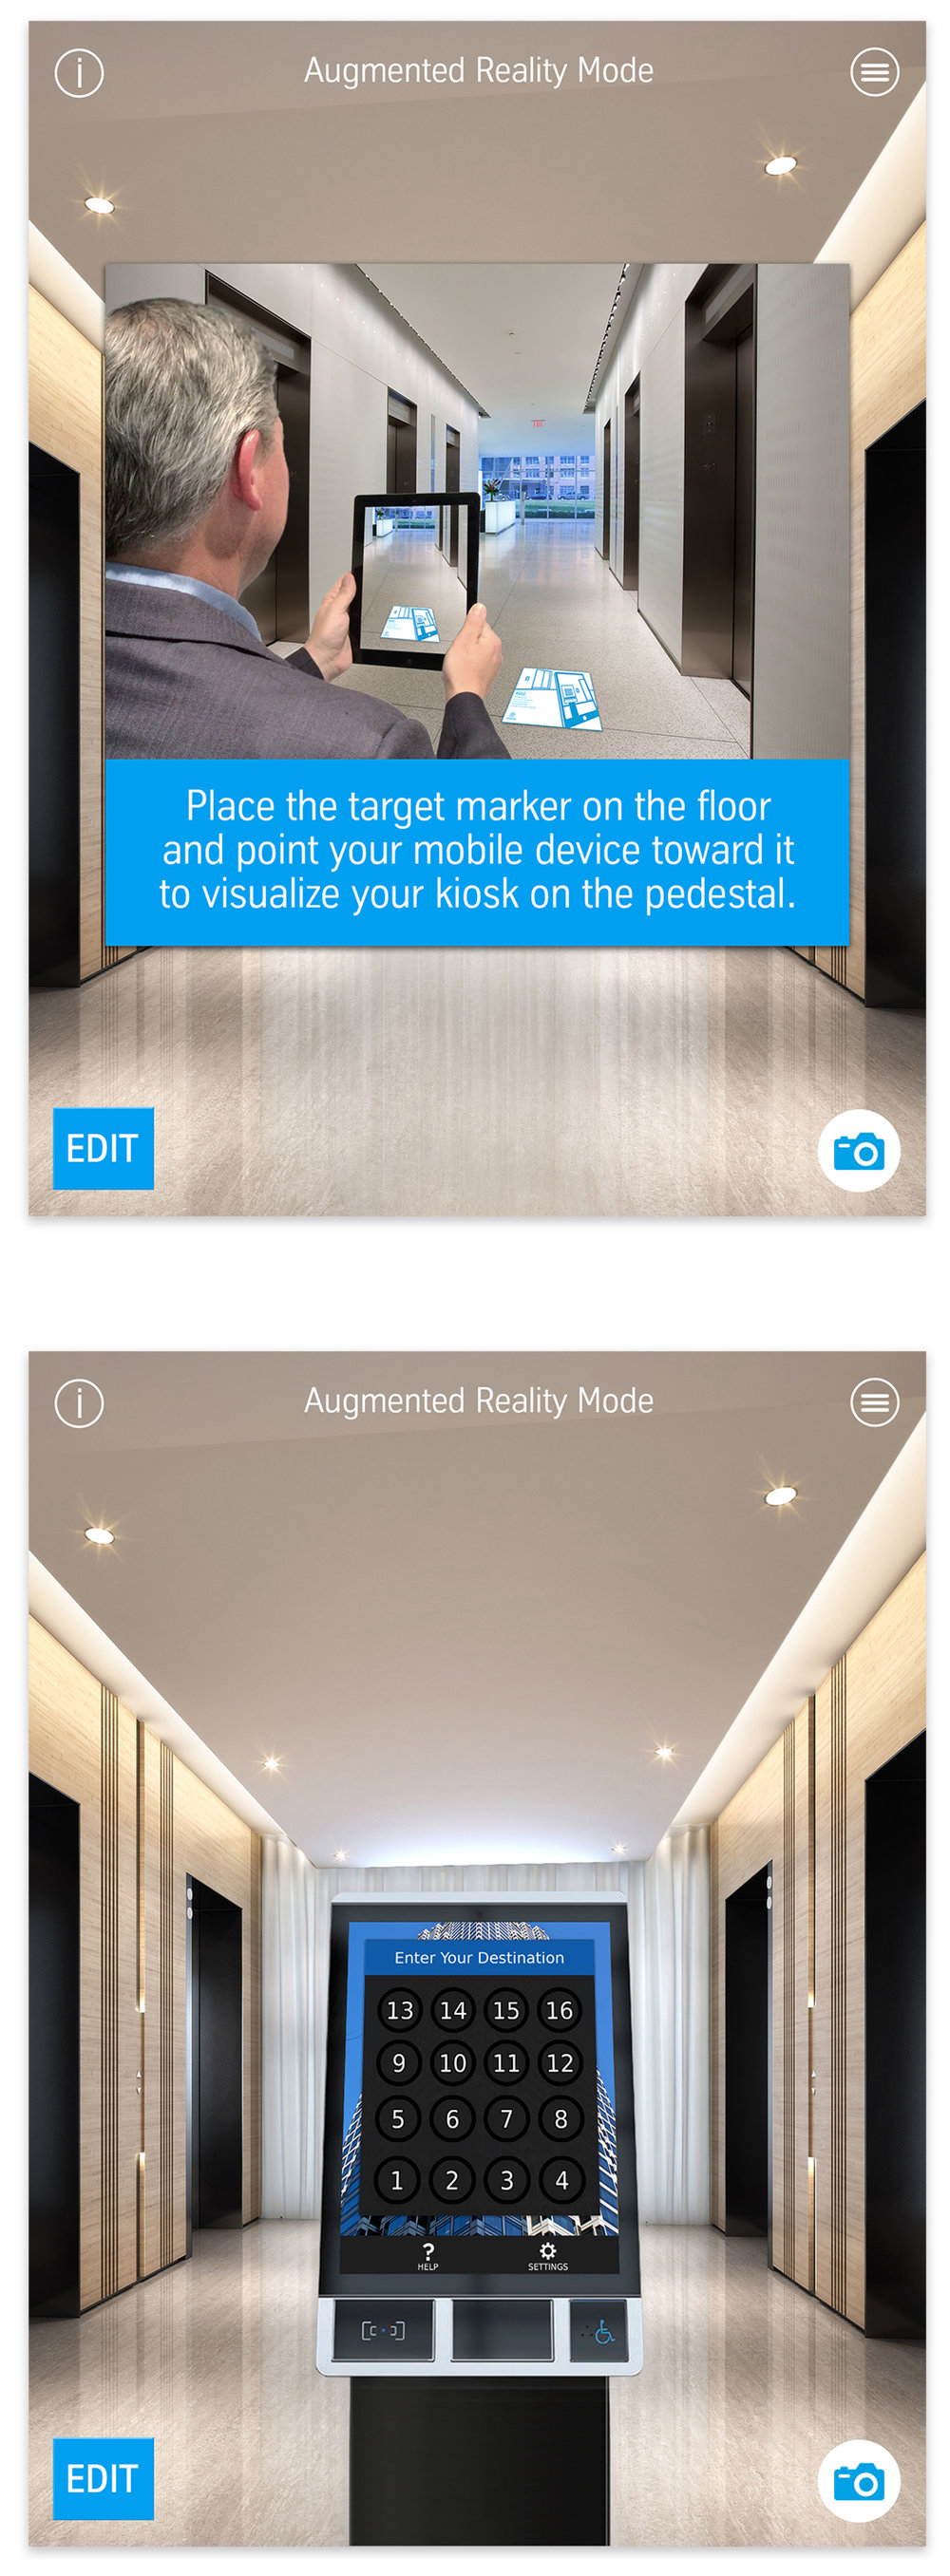 Augmented reality app:  Apple  https://itunes.apple.com/us/app/agile-destination-controls/id1271952896?mt=8   Google Play  https://play.google.com/store/apps/details?id=com.thyssenkrupp.AGILEDestinationControls